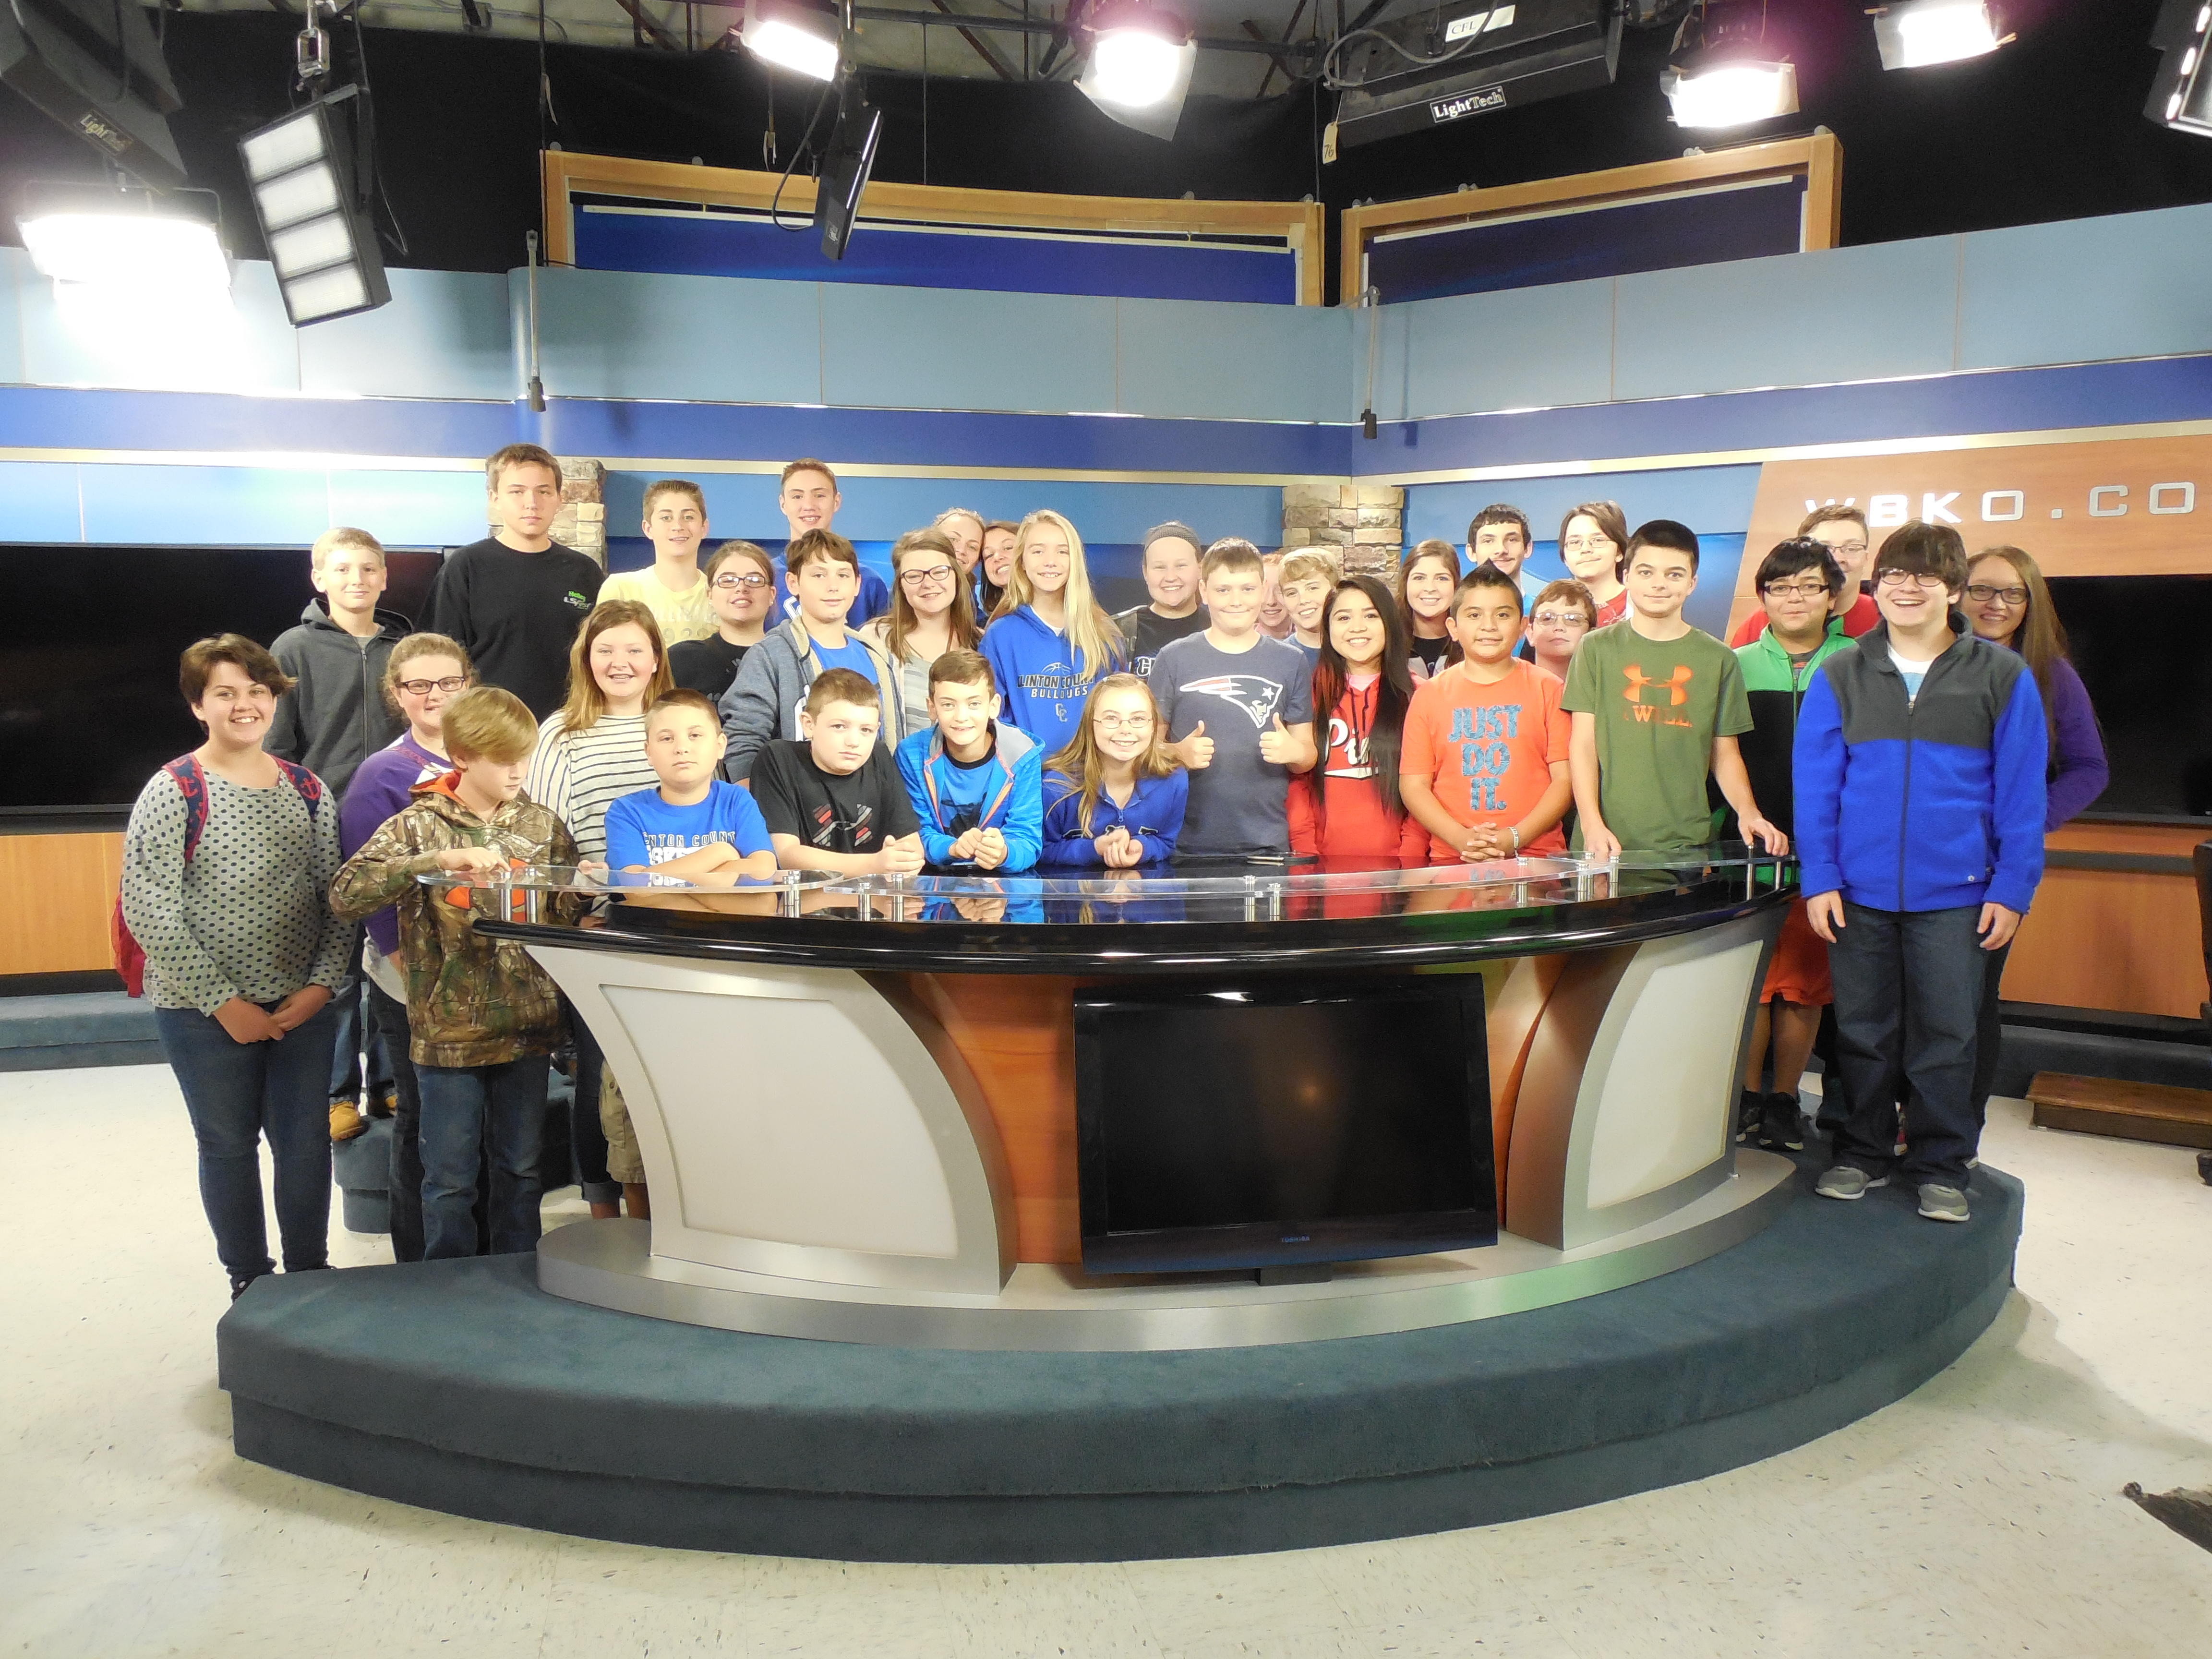 On Friday, October 28th, CCMS and CCHS students traveled to Bowling Green, Kentucky to tour the WBKO television studio.